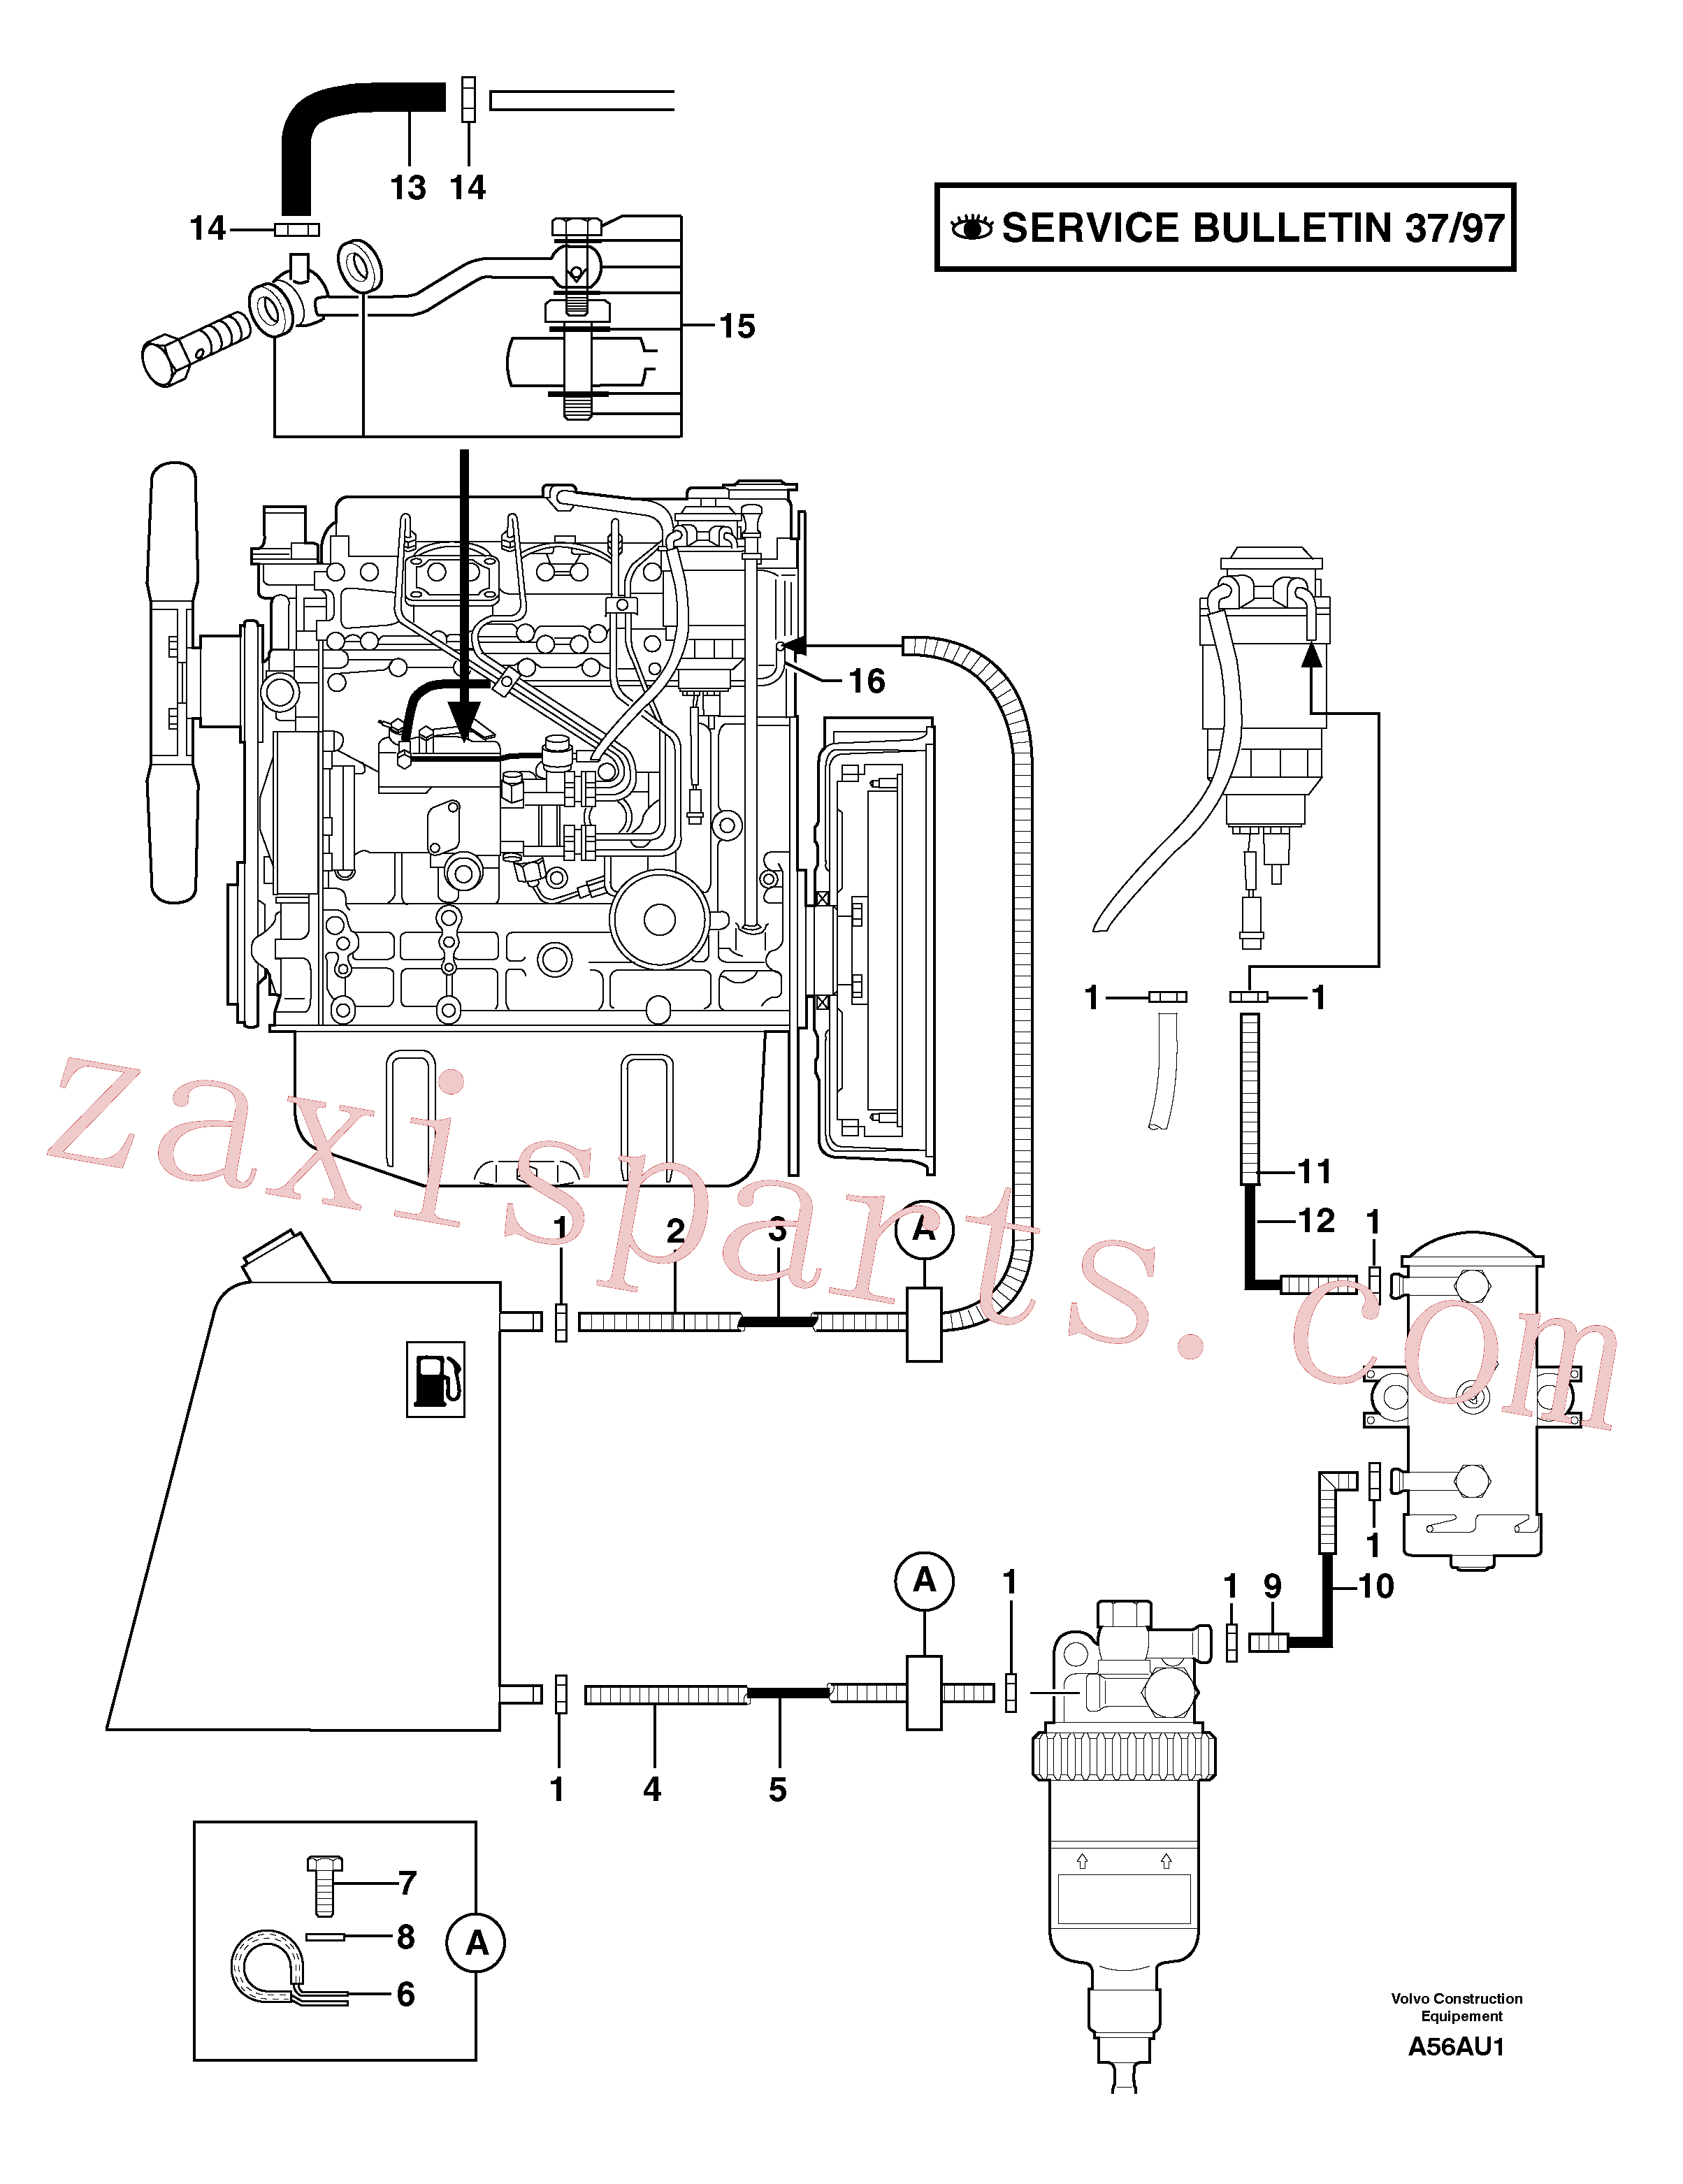 PJ2360015 for Volvo Fuel circuit(A56AU1 assembly)